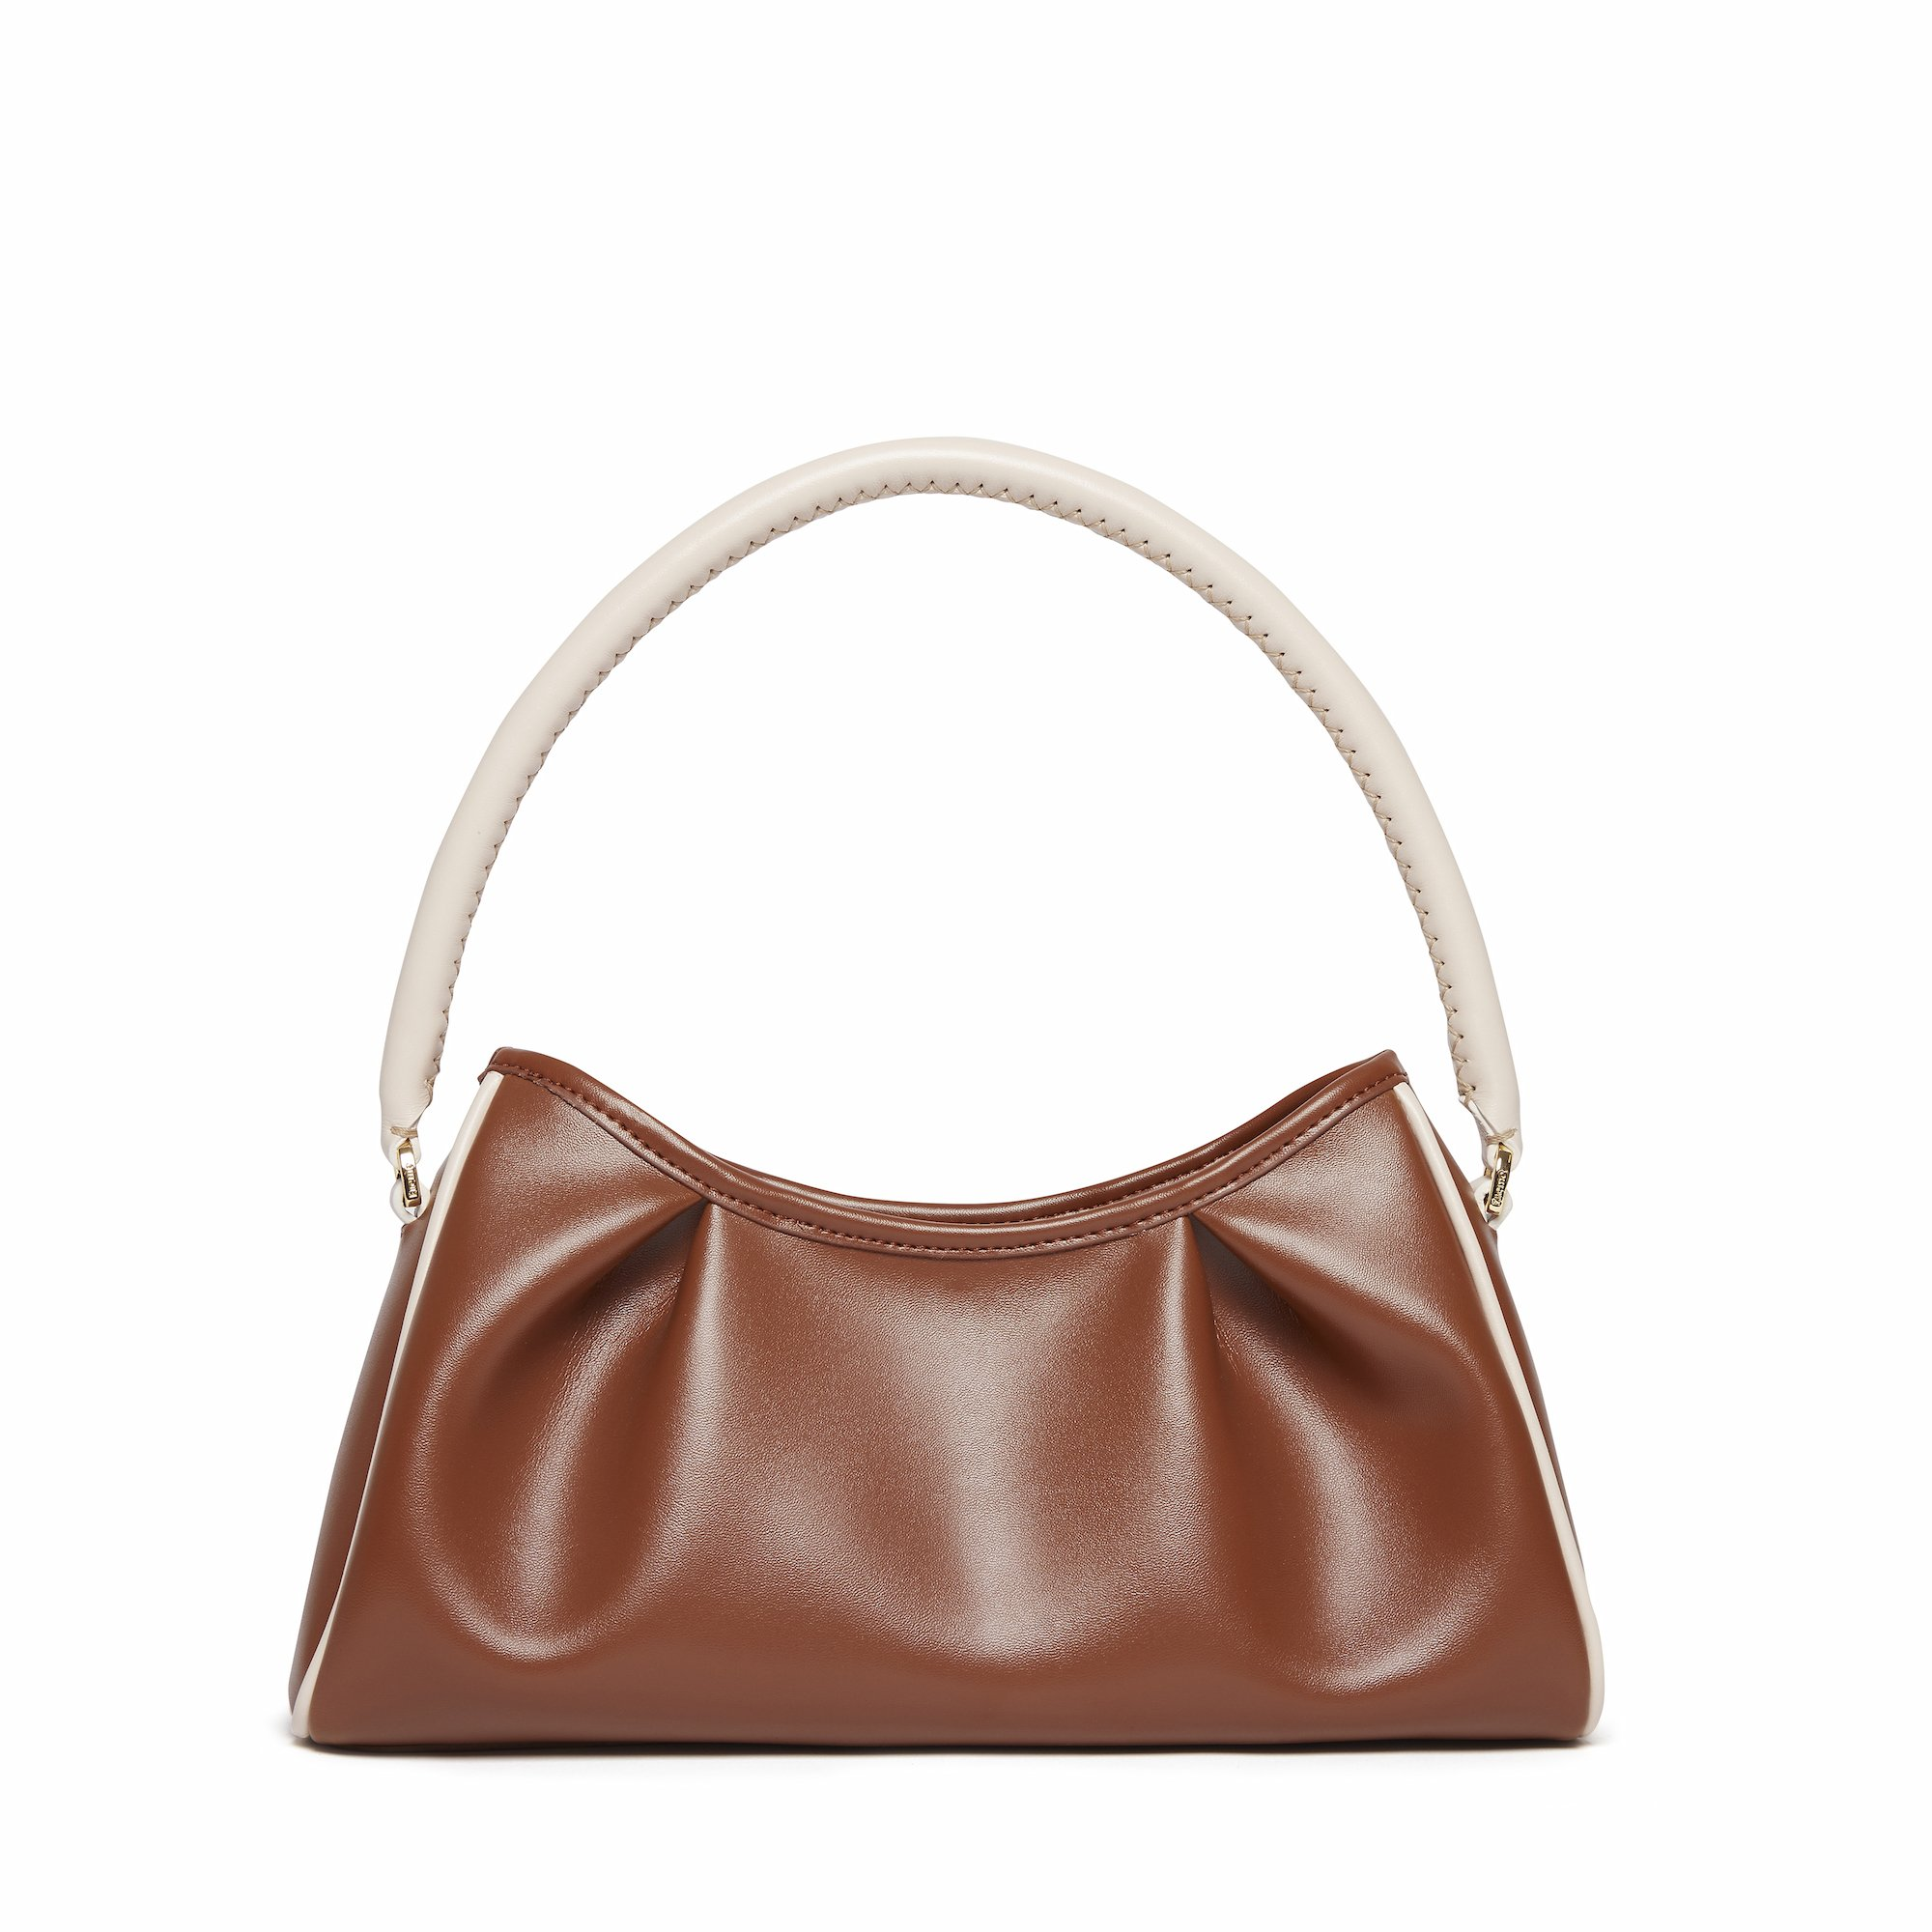 Dimple by Elleme, available on elleme.com for EUR395 Hailey Baldwin Bags Exact Product